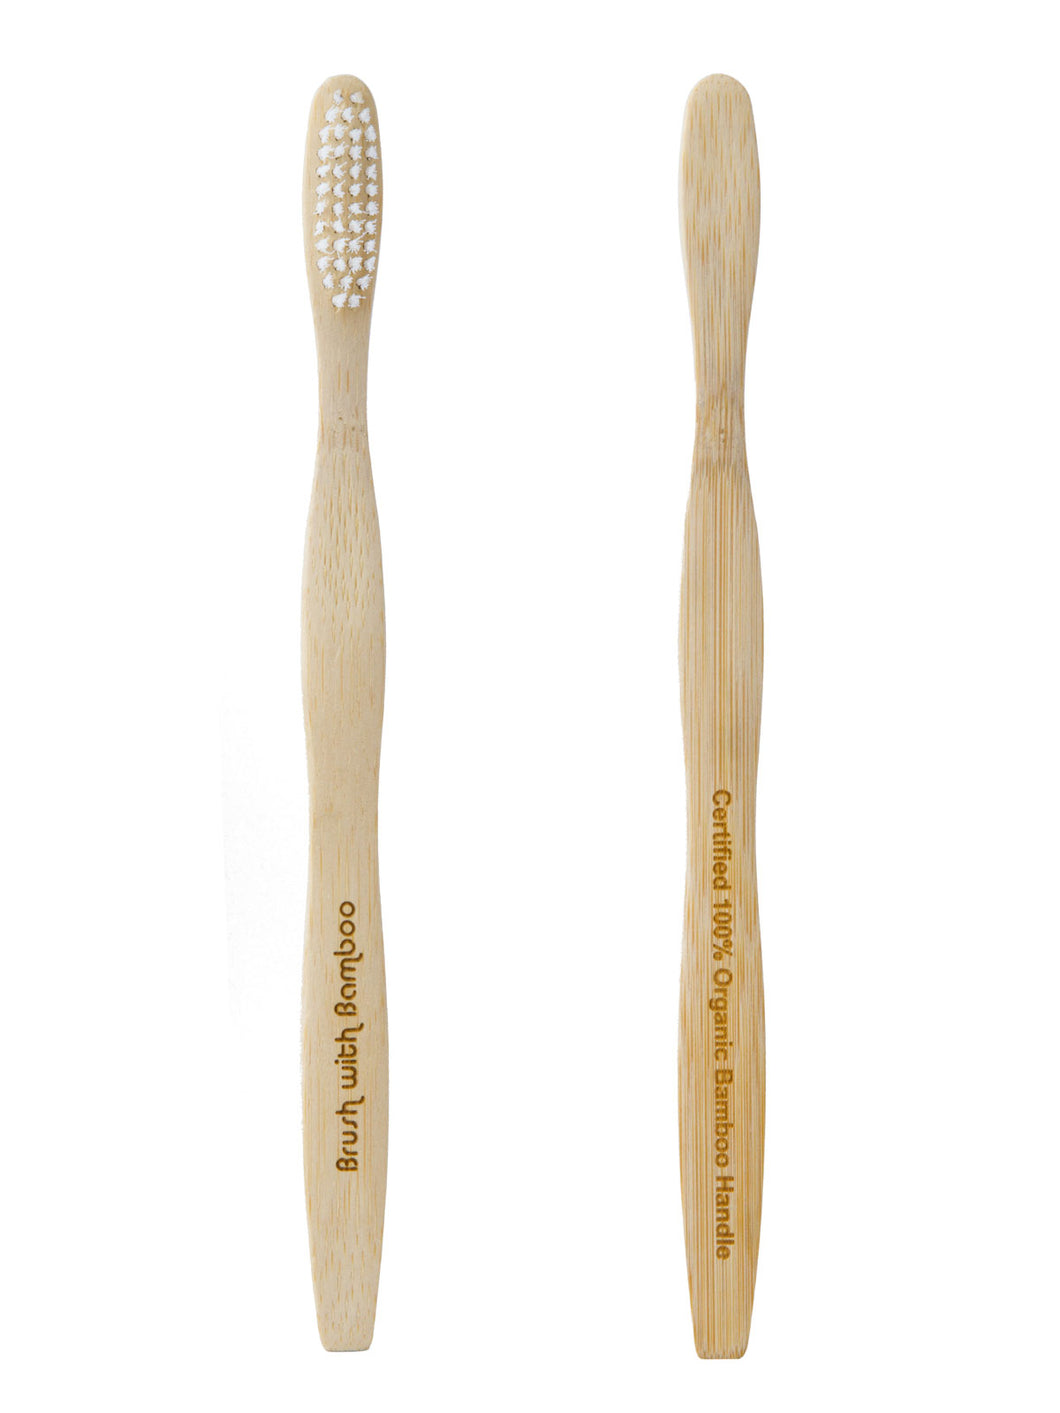 Adult Bamboo Toothbrush | Well Earth Goods